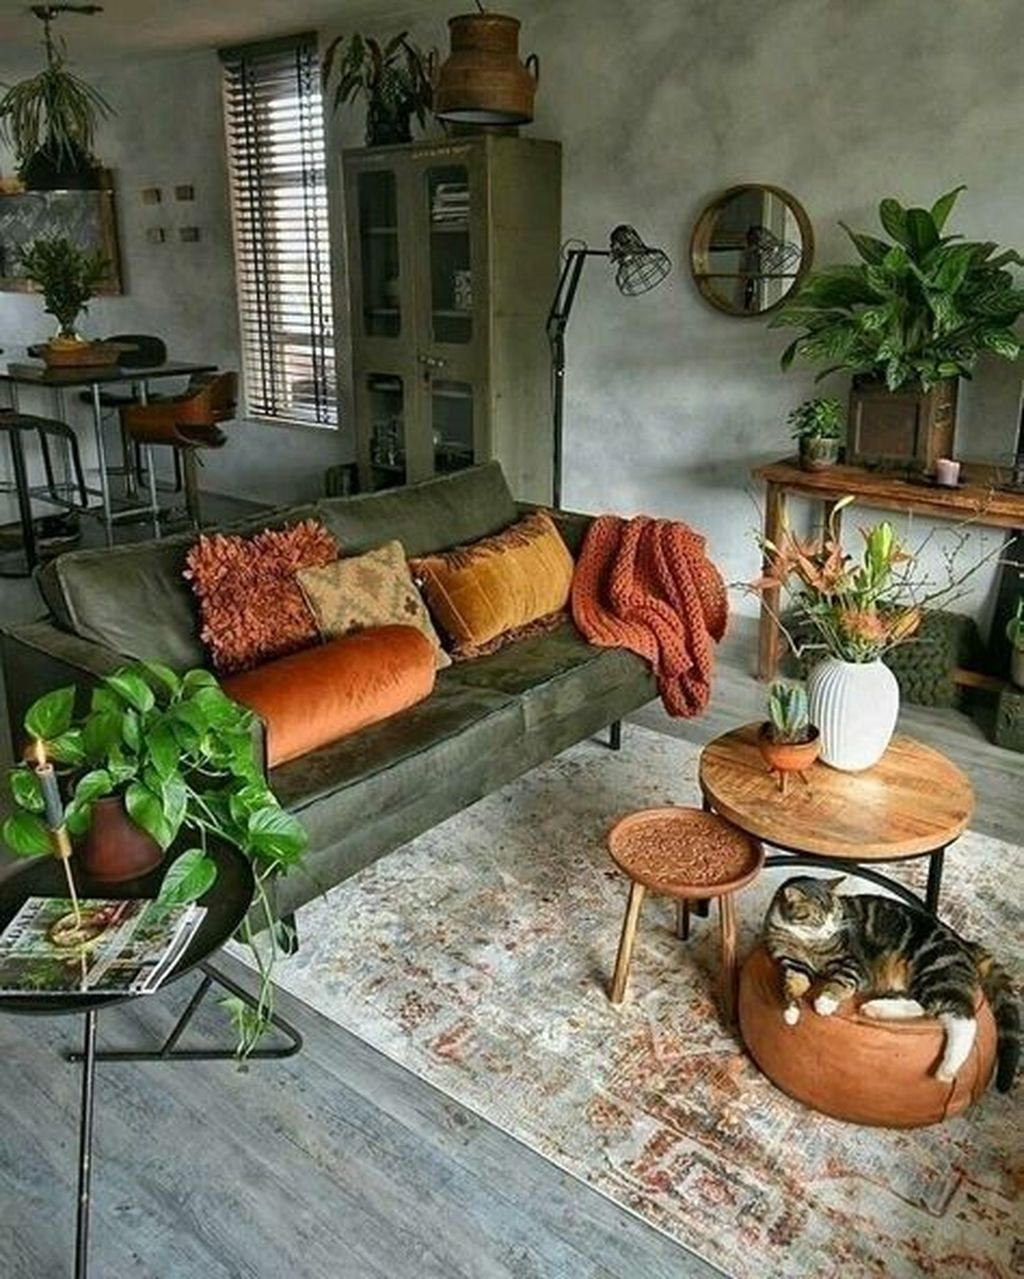 30 Modern Home Decor Ideas: 30+ Rustic Living Room Decoration Ideas With Bohemian